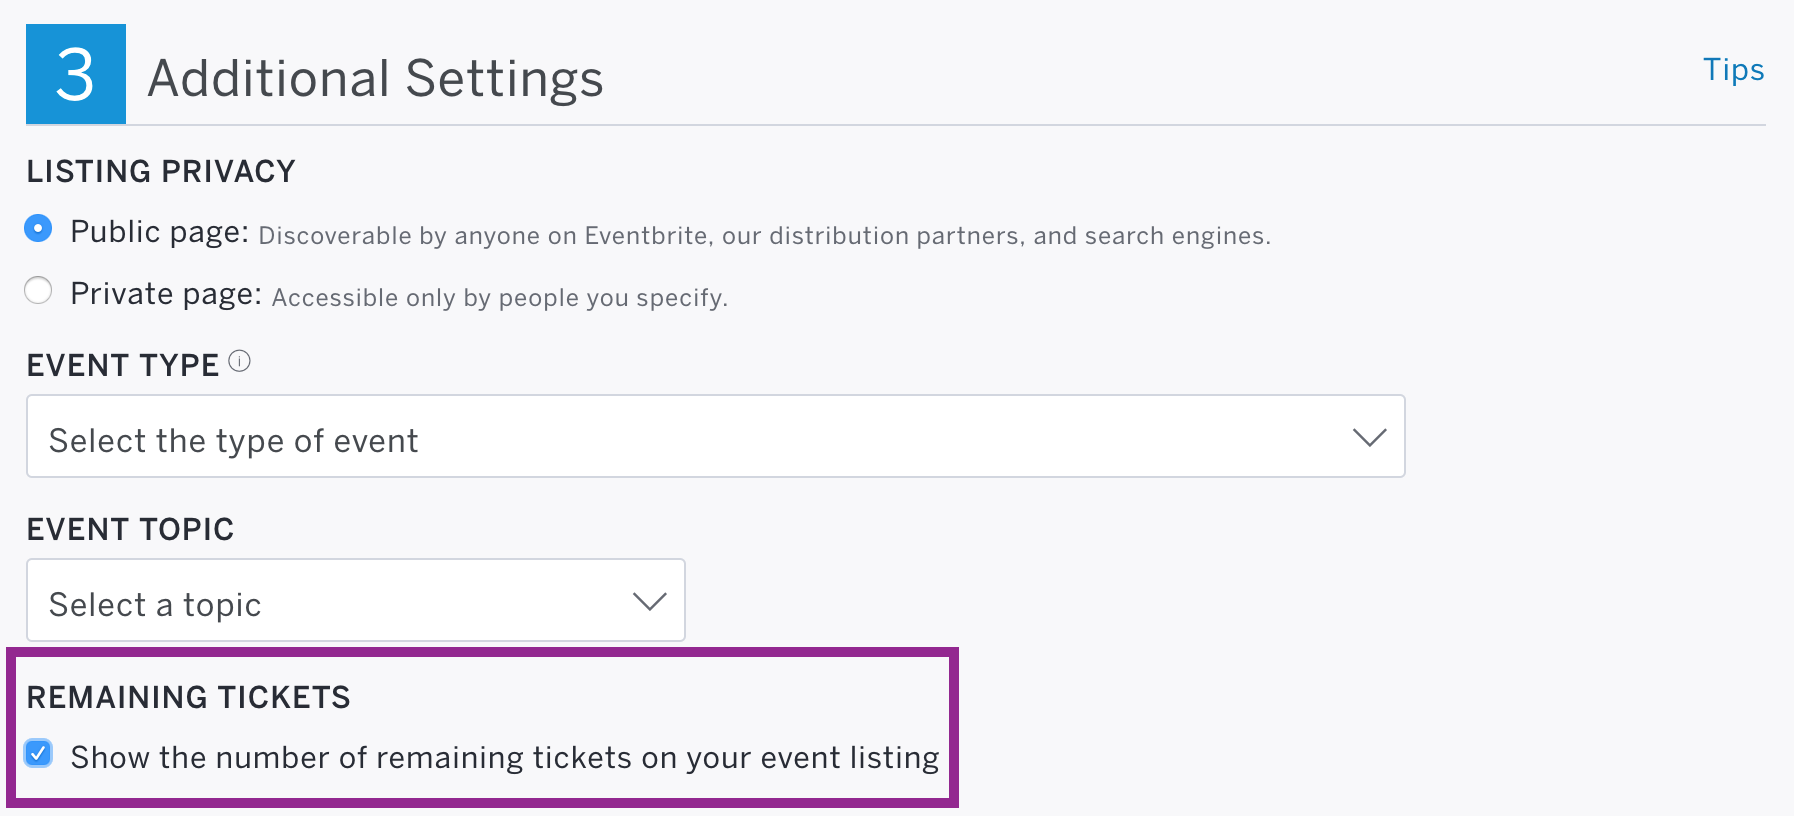 Remaining Tickets is the last section of Step 3: Additional Settings on your event's Edit page.